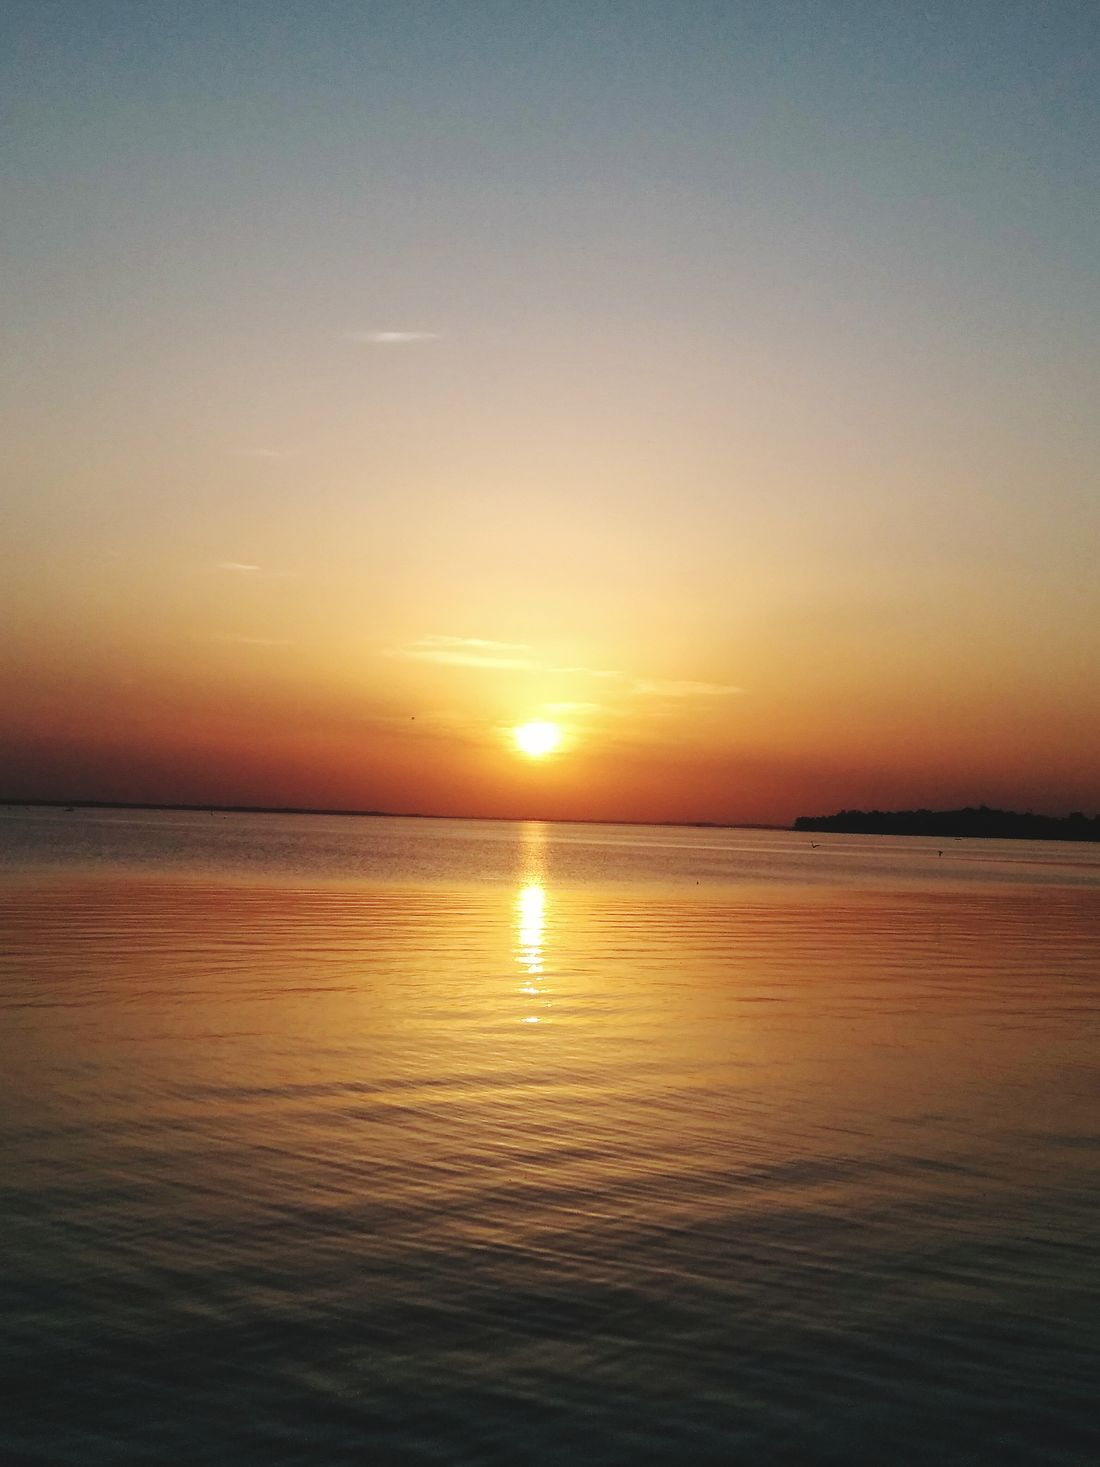 Sunset Sea Beauty In Nature Water Scenics Sun Tranquility Reflection Travel Destinations Tranquil Scene Nature Horizon Over Water Outdoors Silhouette Idyllic No People Beach Sky Day